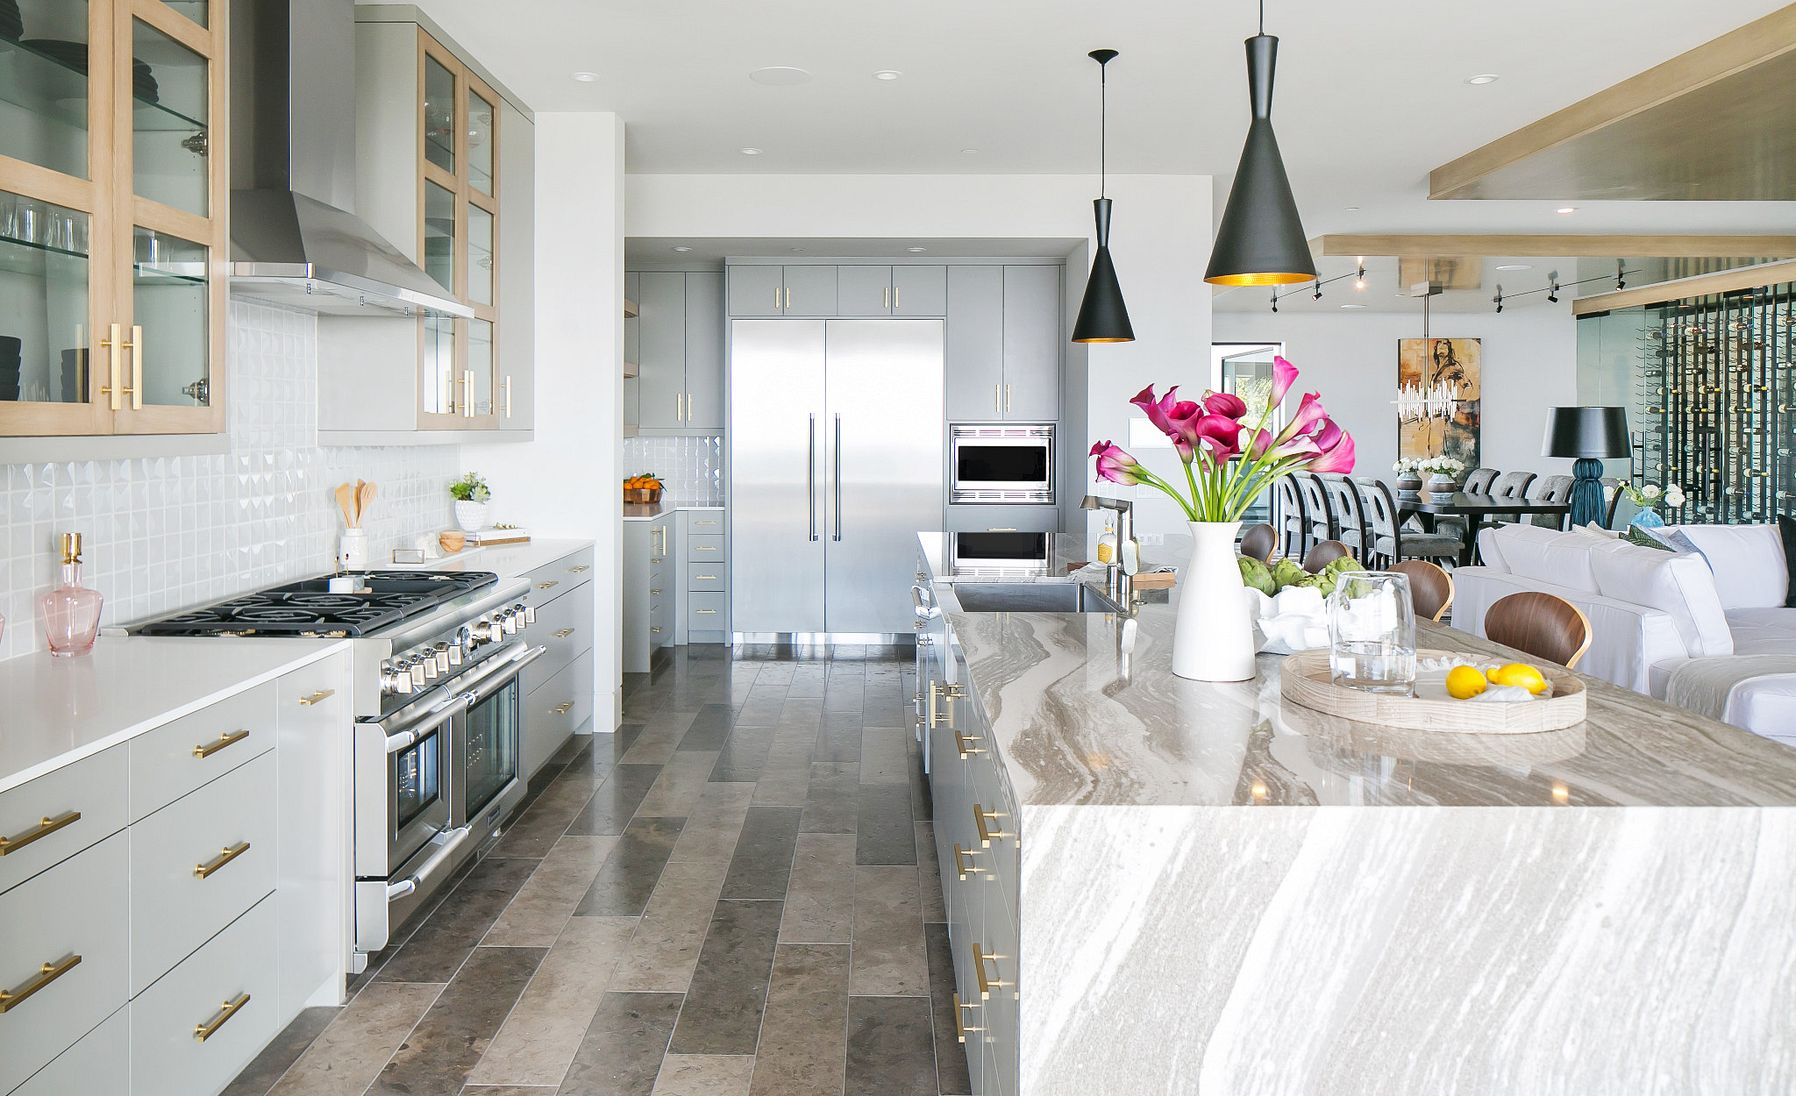 Stunning coastal kitchen featuring a waterfall island made of the wood countertop alternative, Cambria Oakmoor.